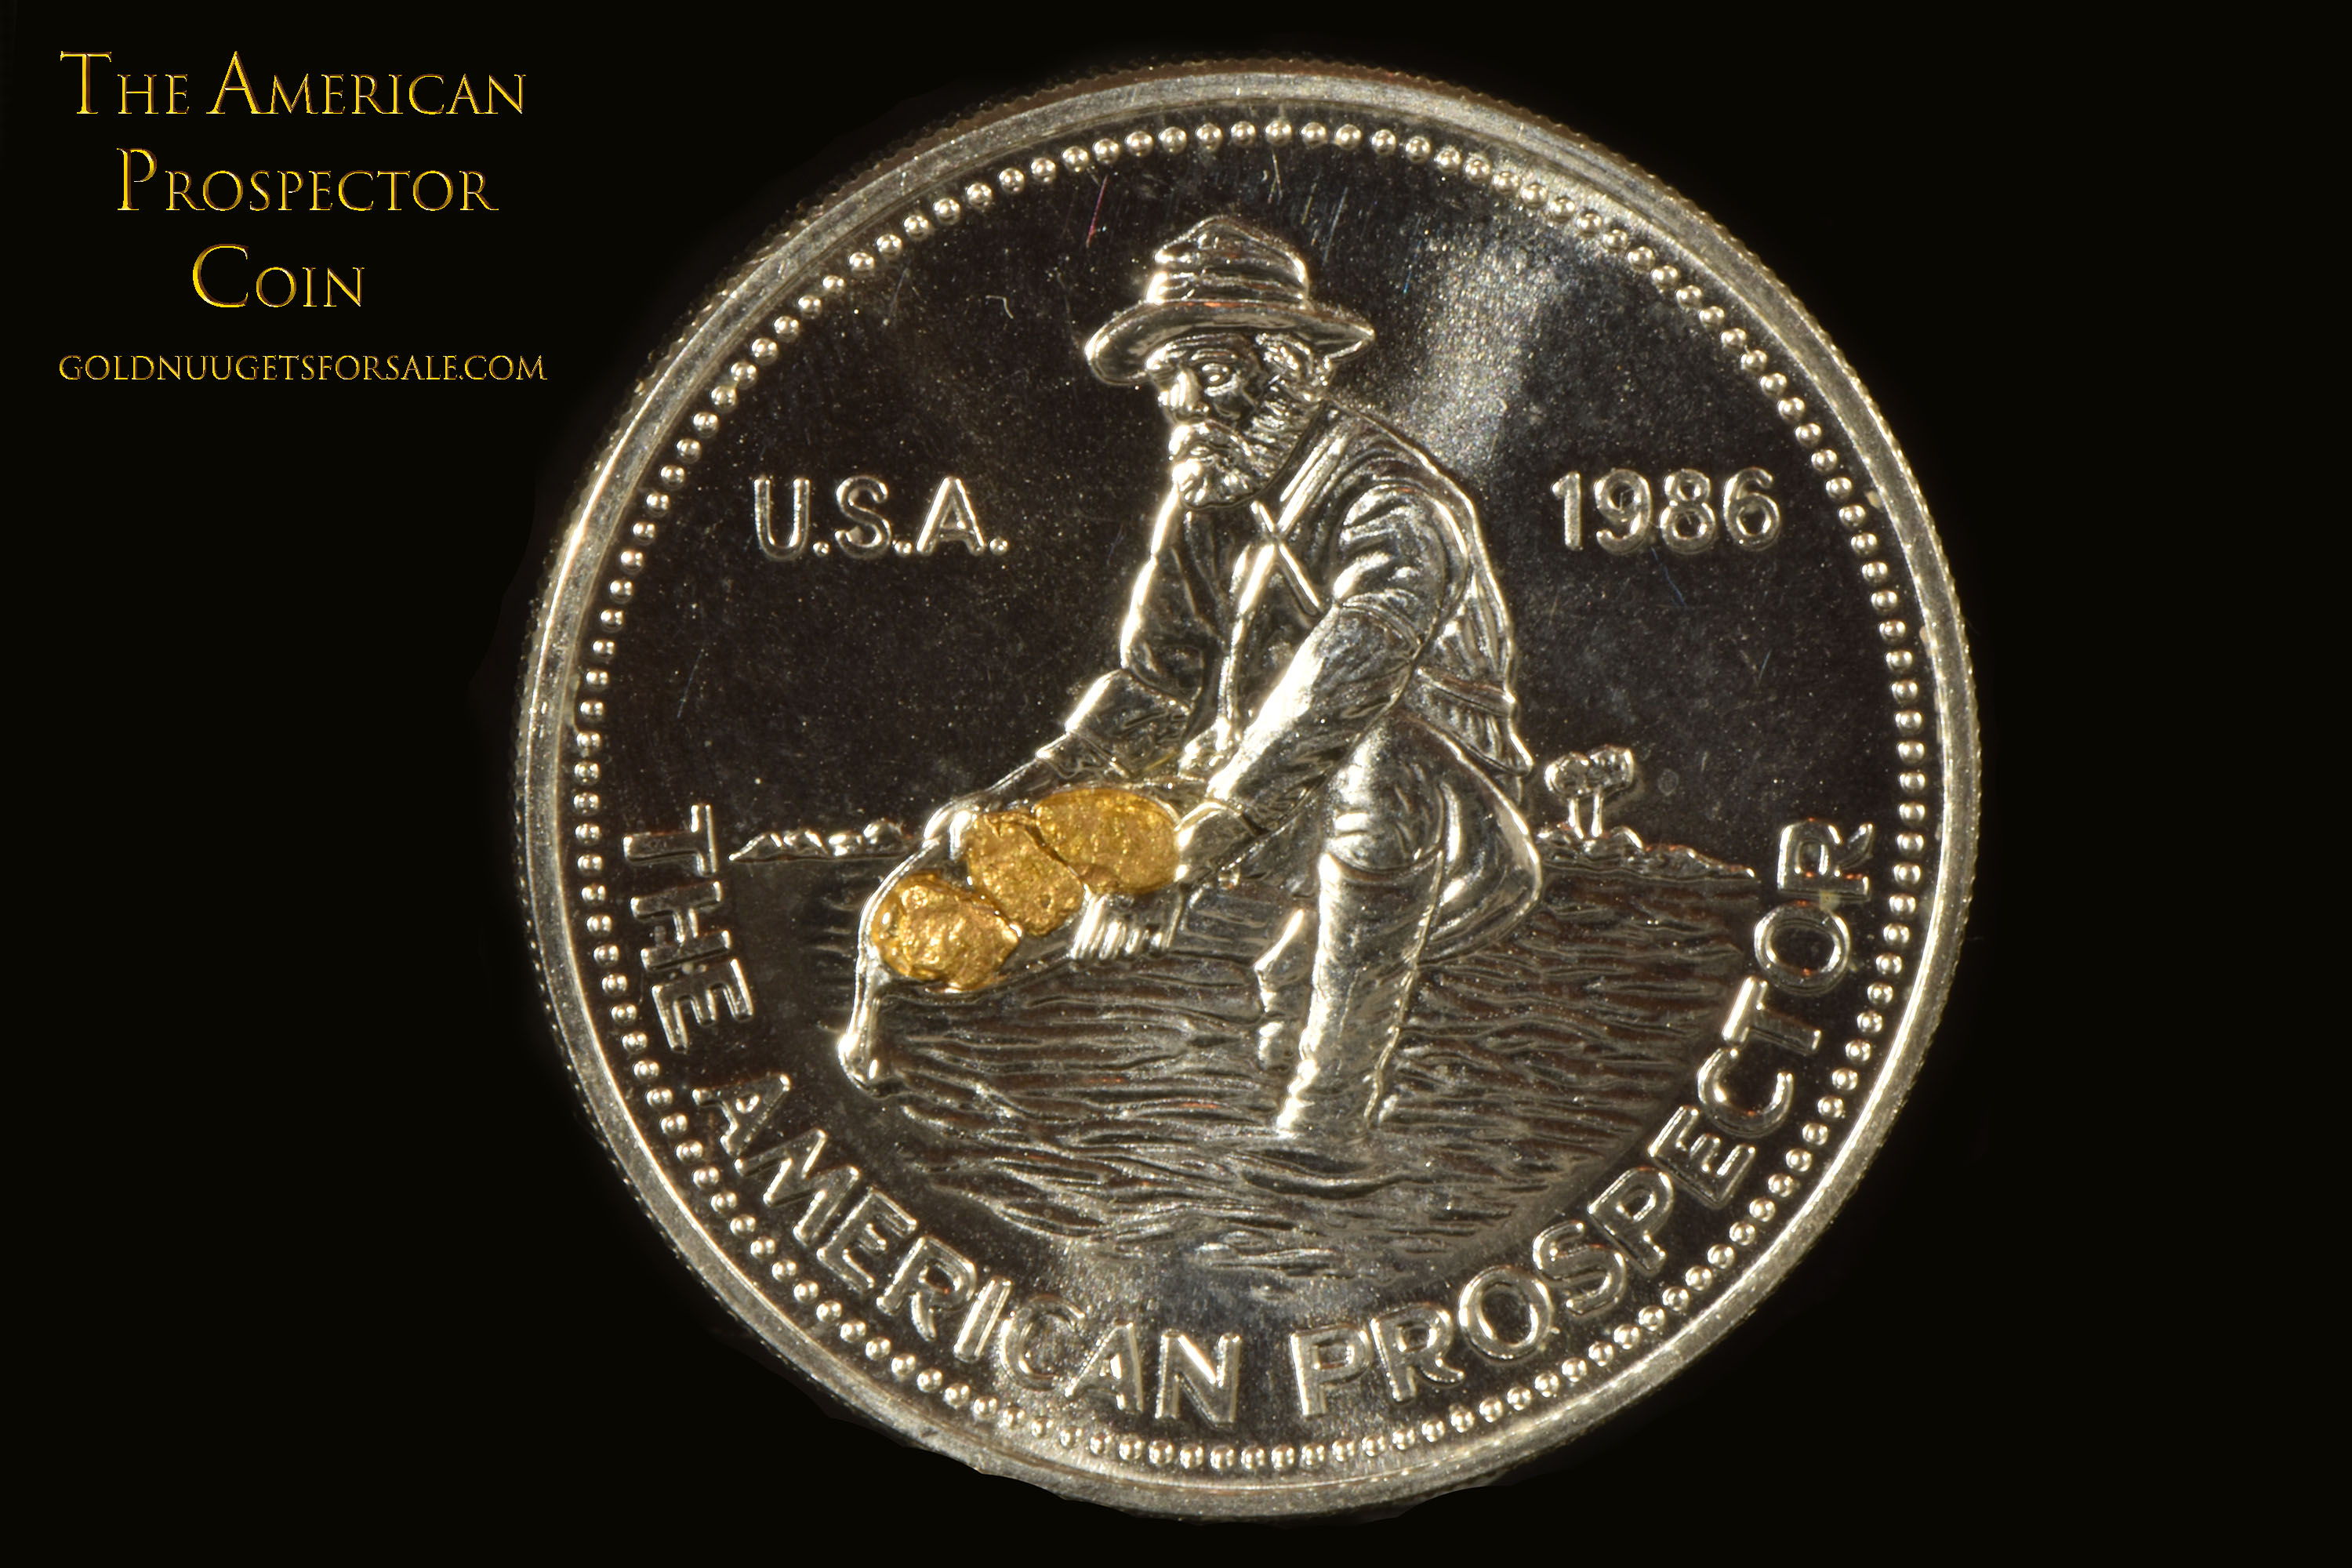 American Prospector - Silver Coin with 3 Gold Nuggets